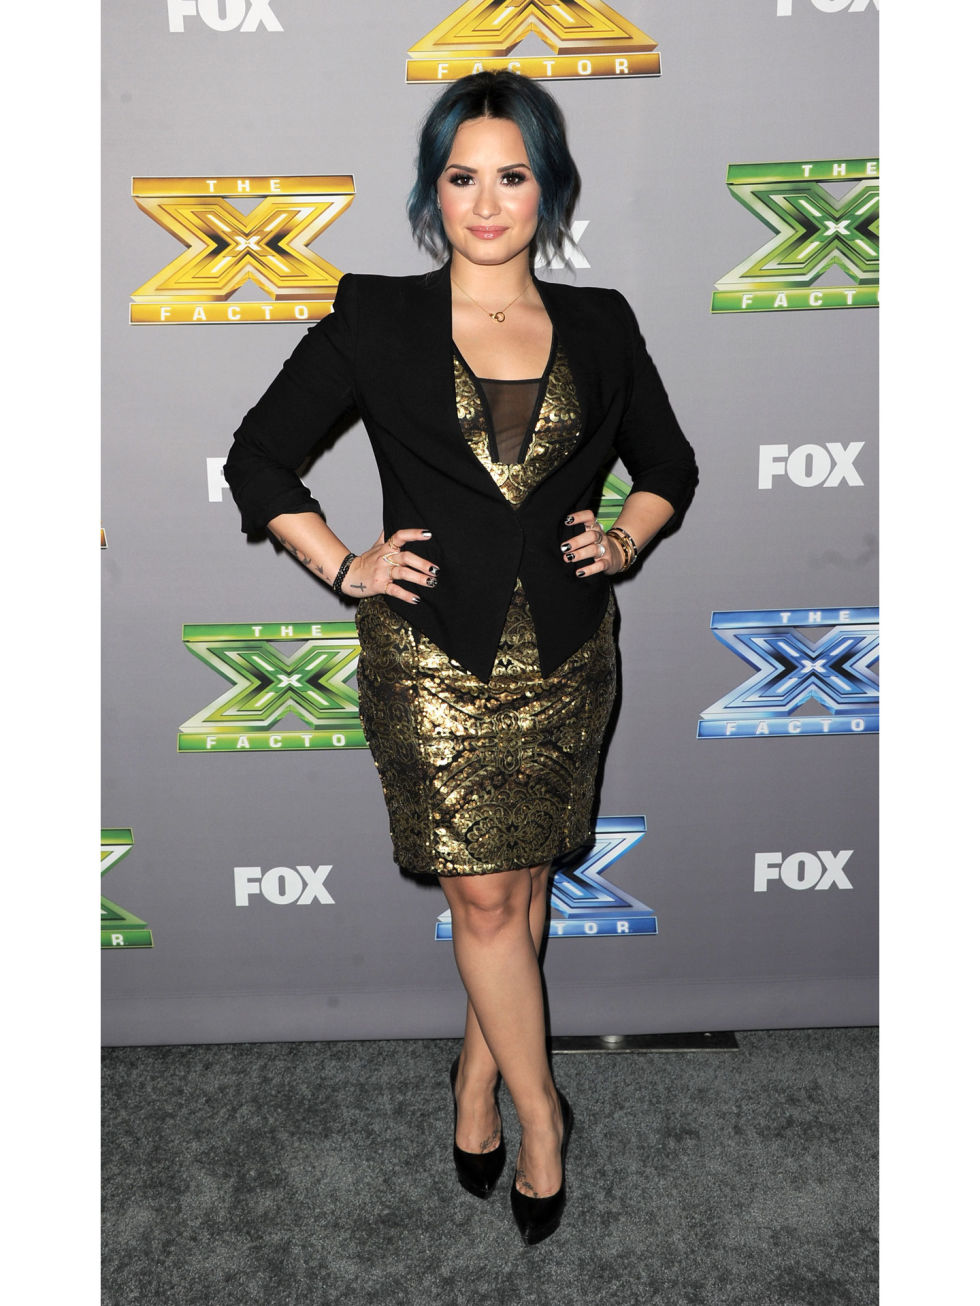 pics for gt demi lovato dress 2013